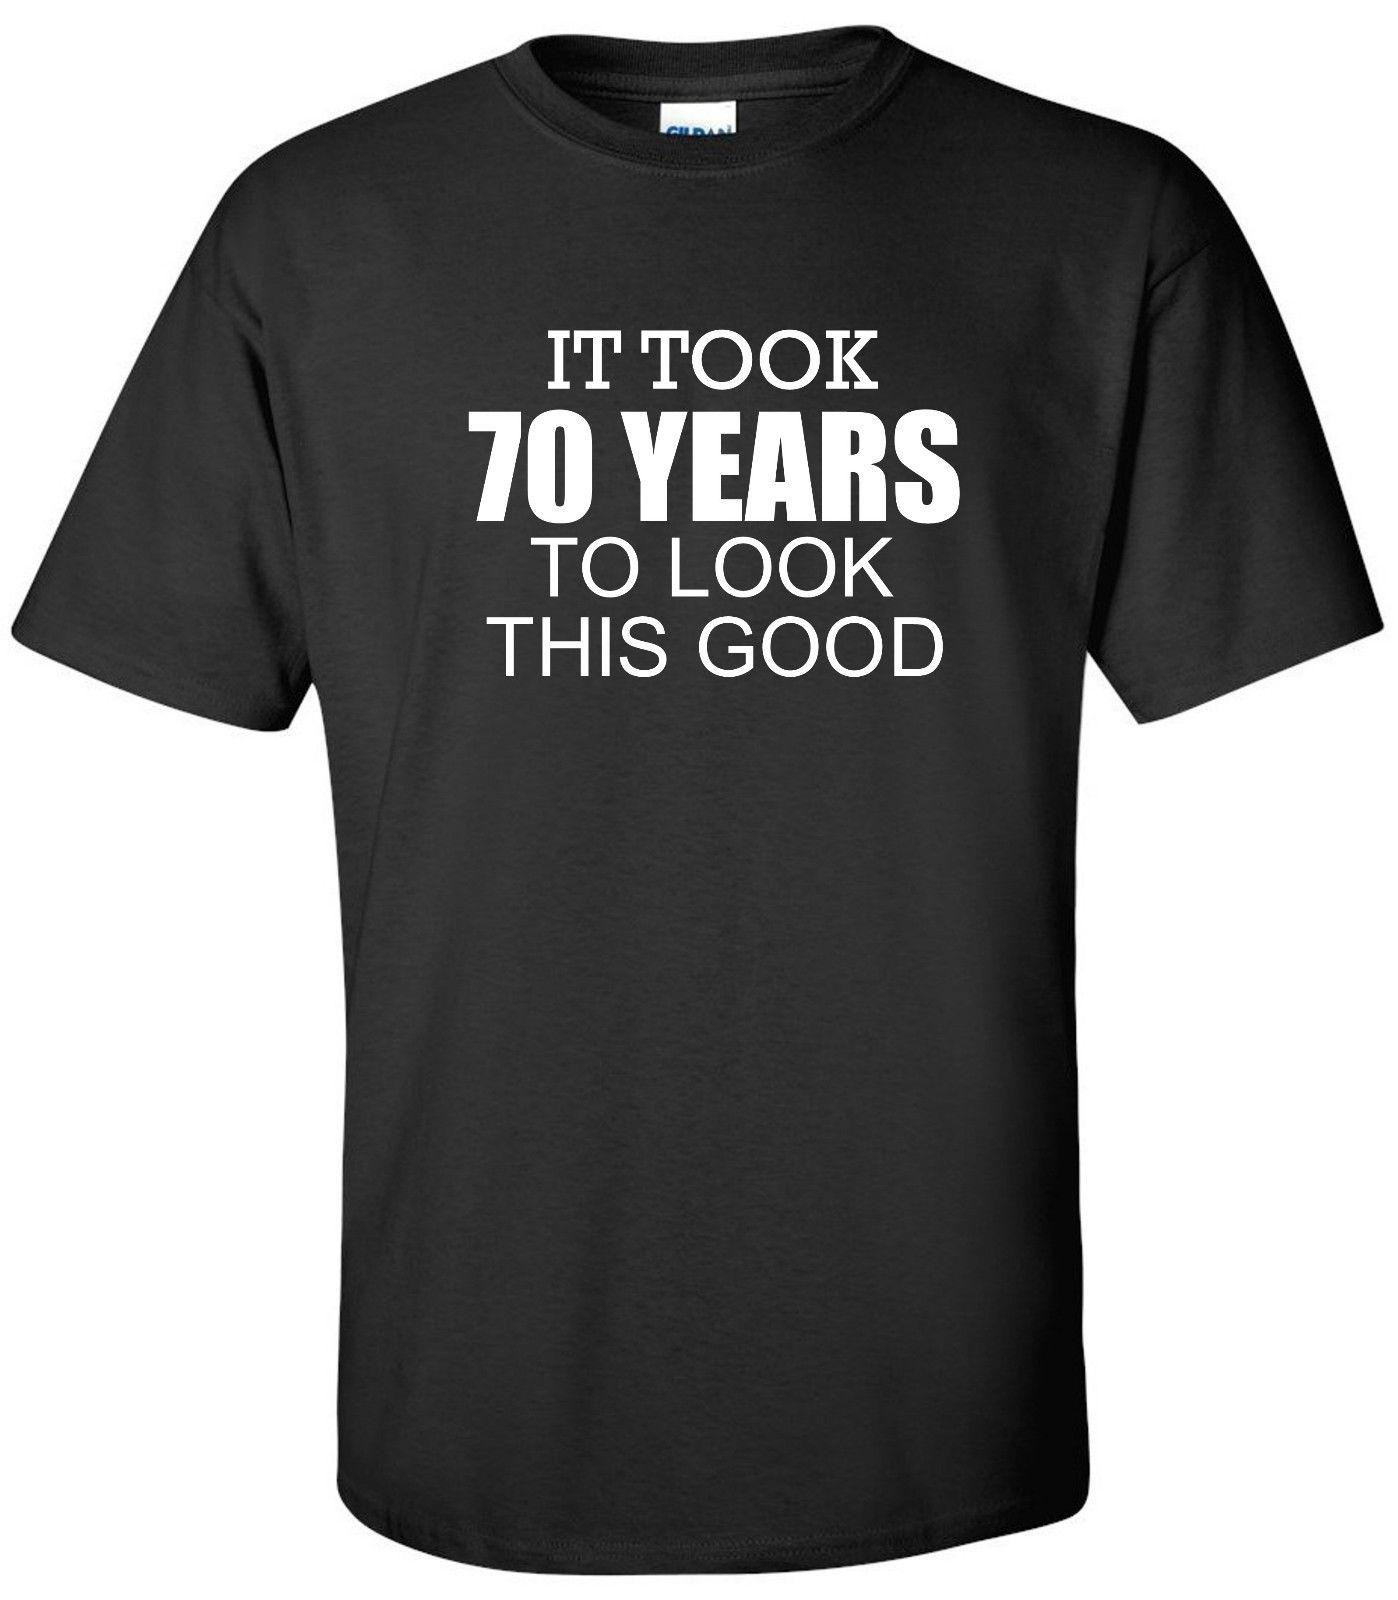 70 Years Old 70th Birthday T Shirt Look This Good Humor Party Funny Quotes Mens Dress From Shirtsthatrock 1101